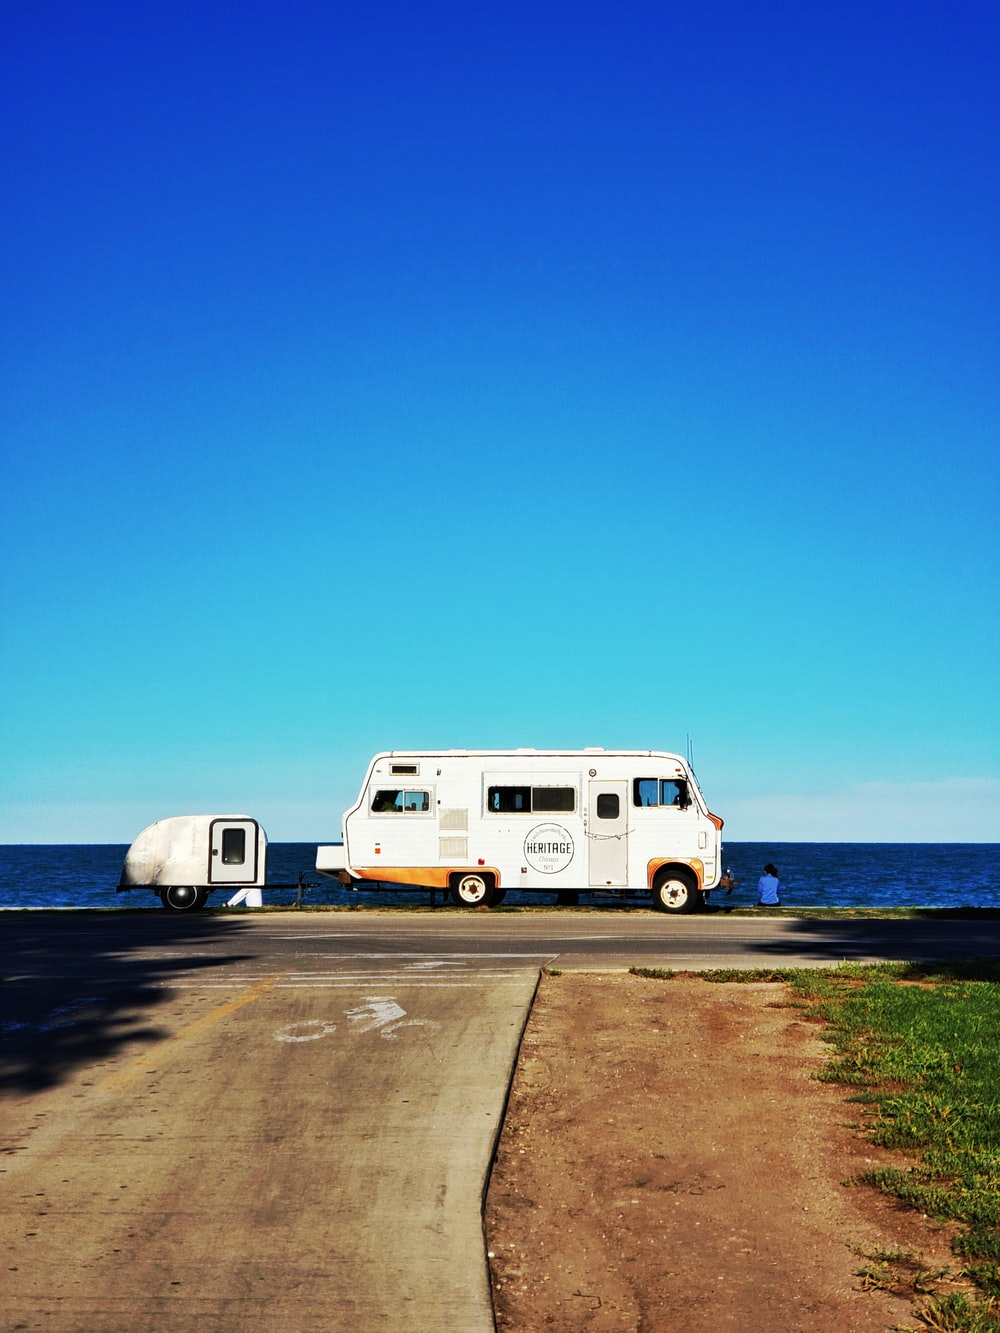 view of a white RV on a roadside